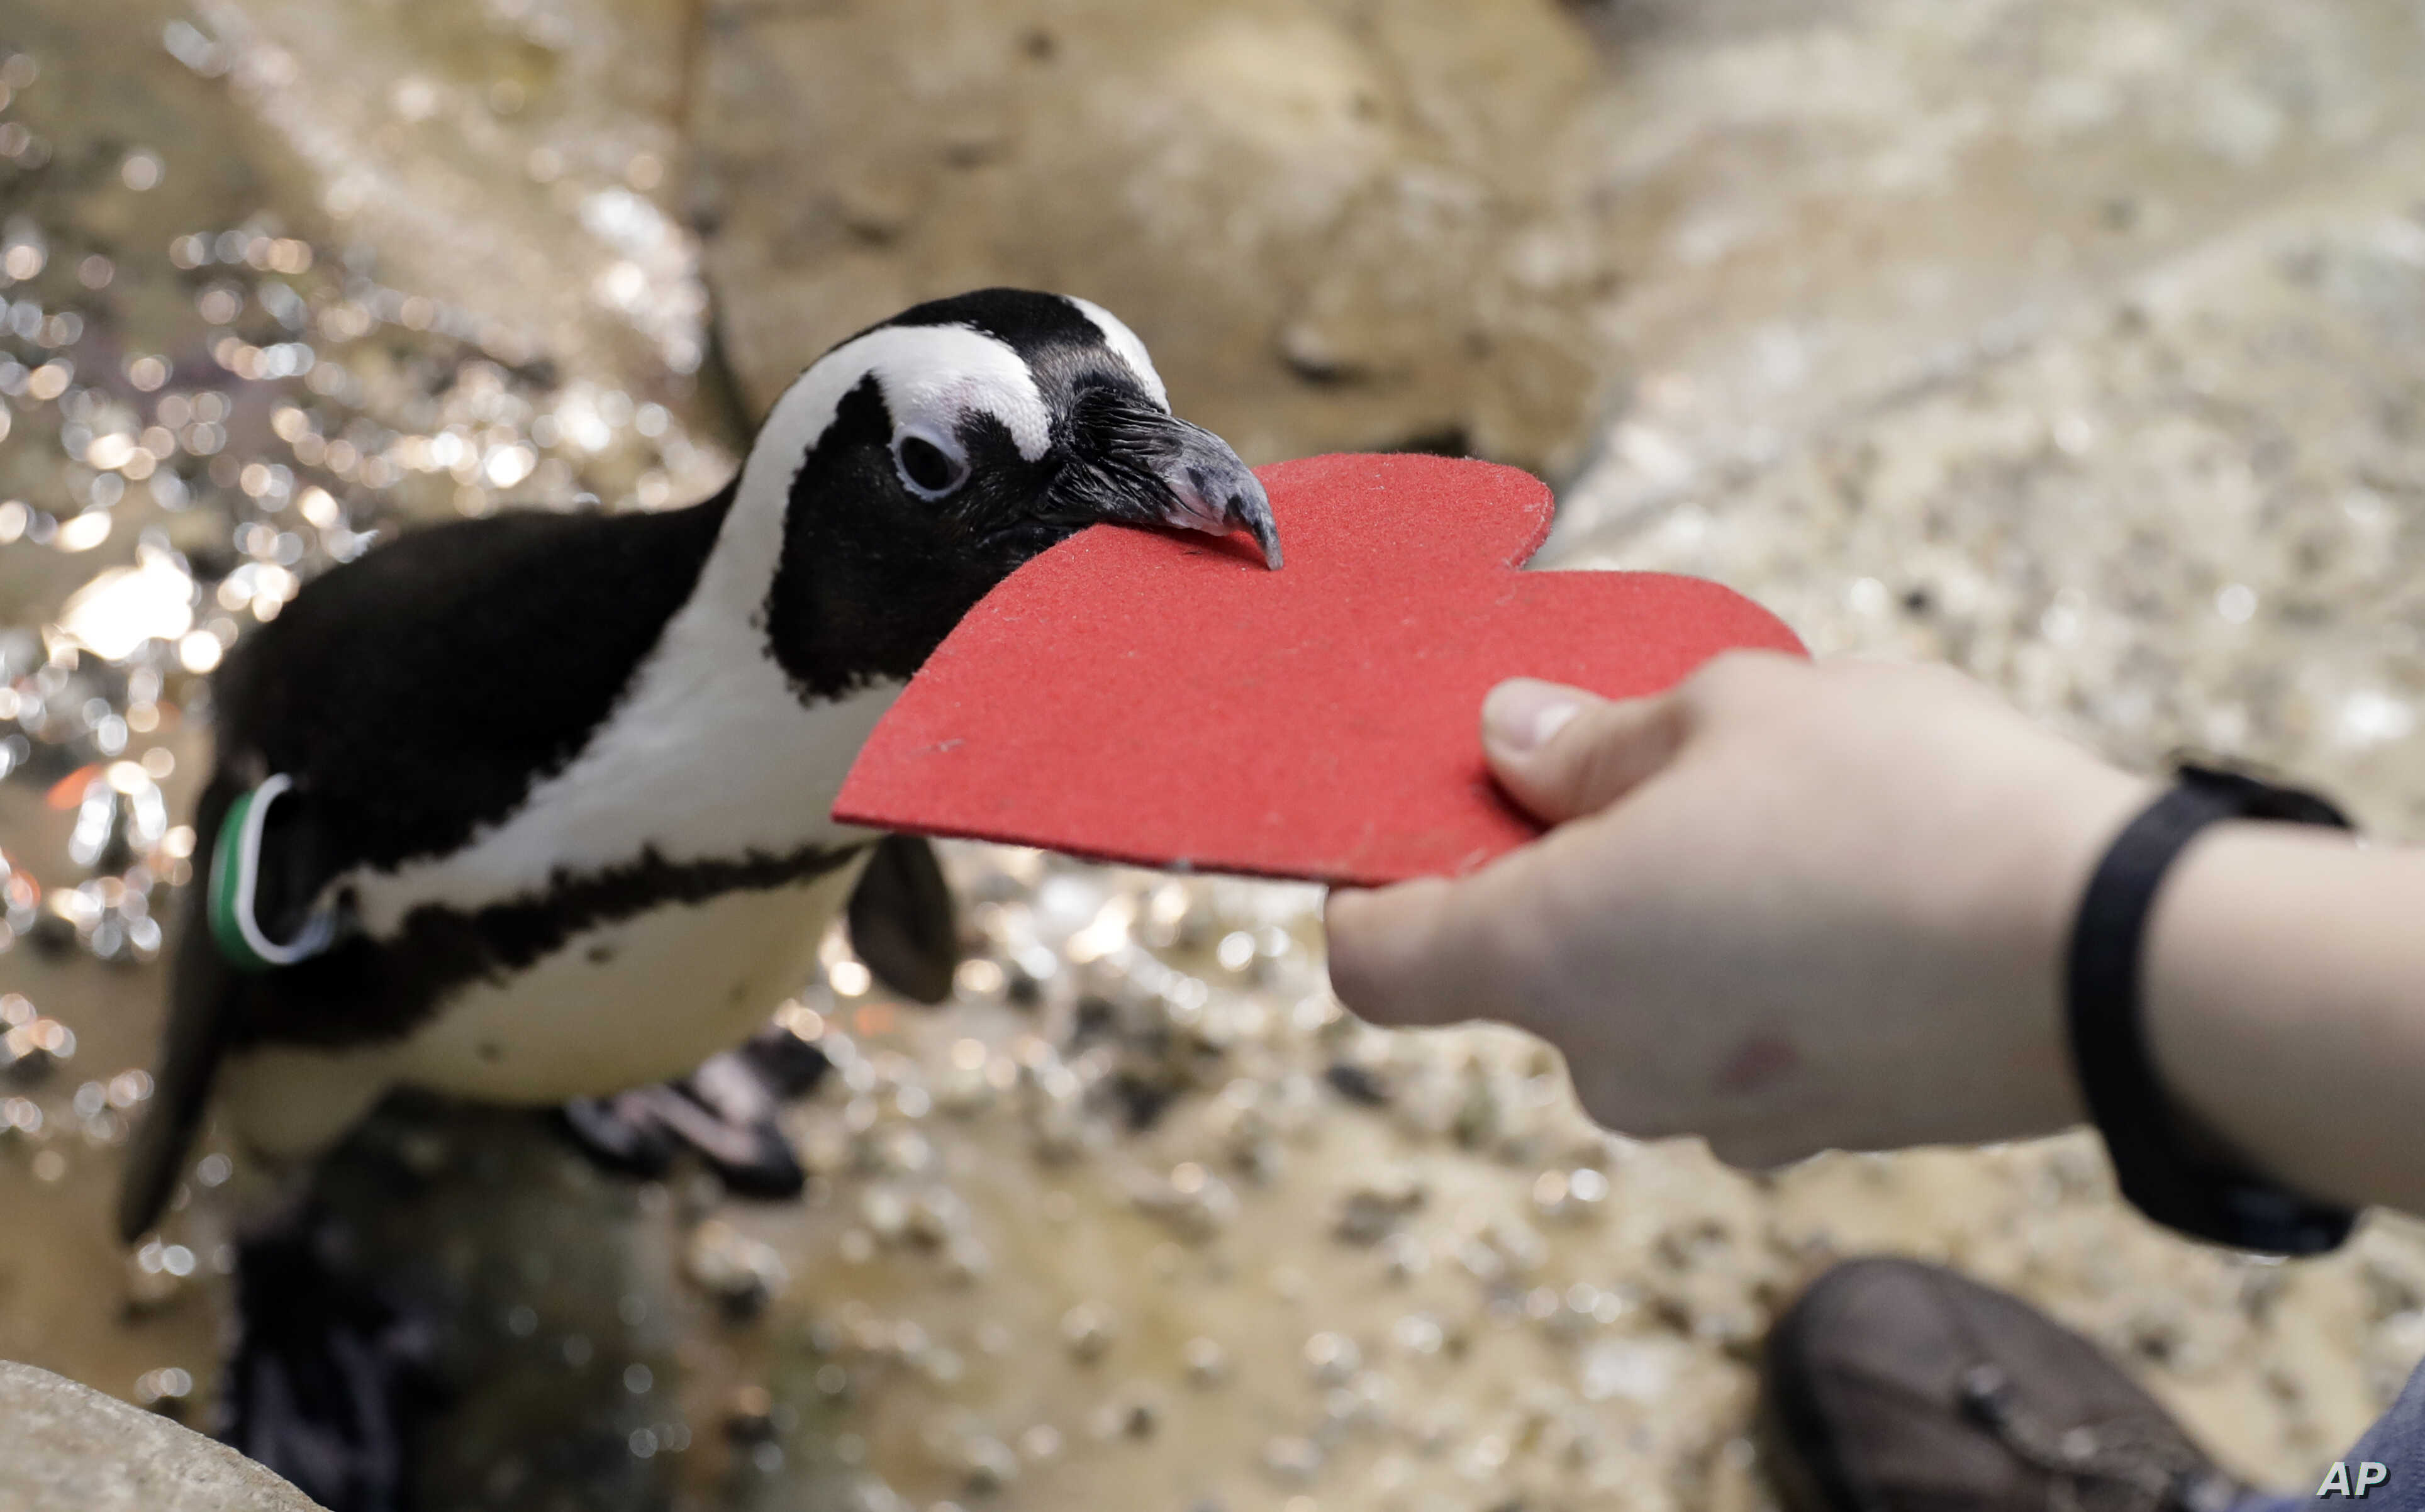 A penguin gets a heart-shaped nesting material from biologist Spencer Rennerfeldt at the California Academy of Sciences, Feb. 13, 2018, in San Francisco.